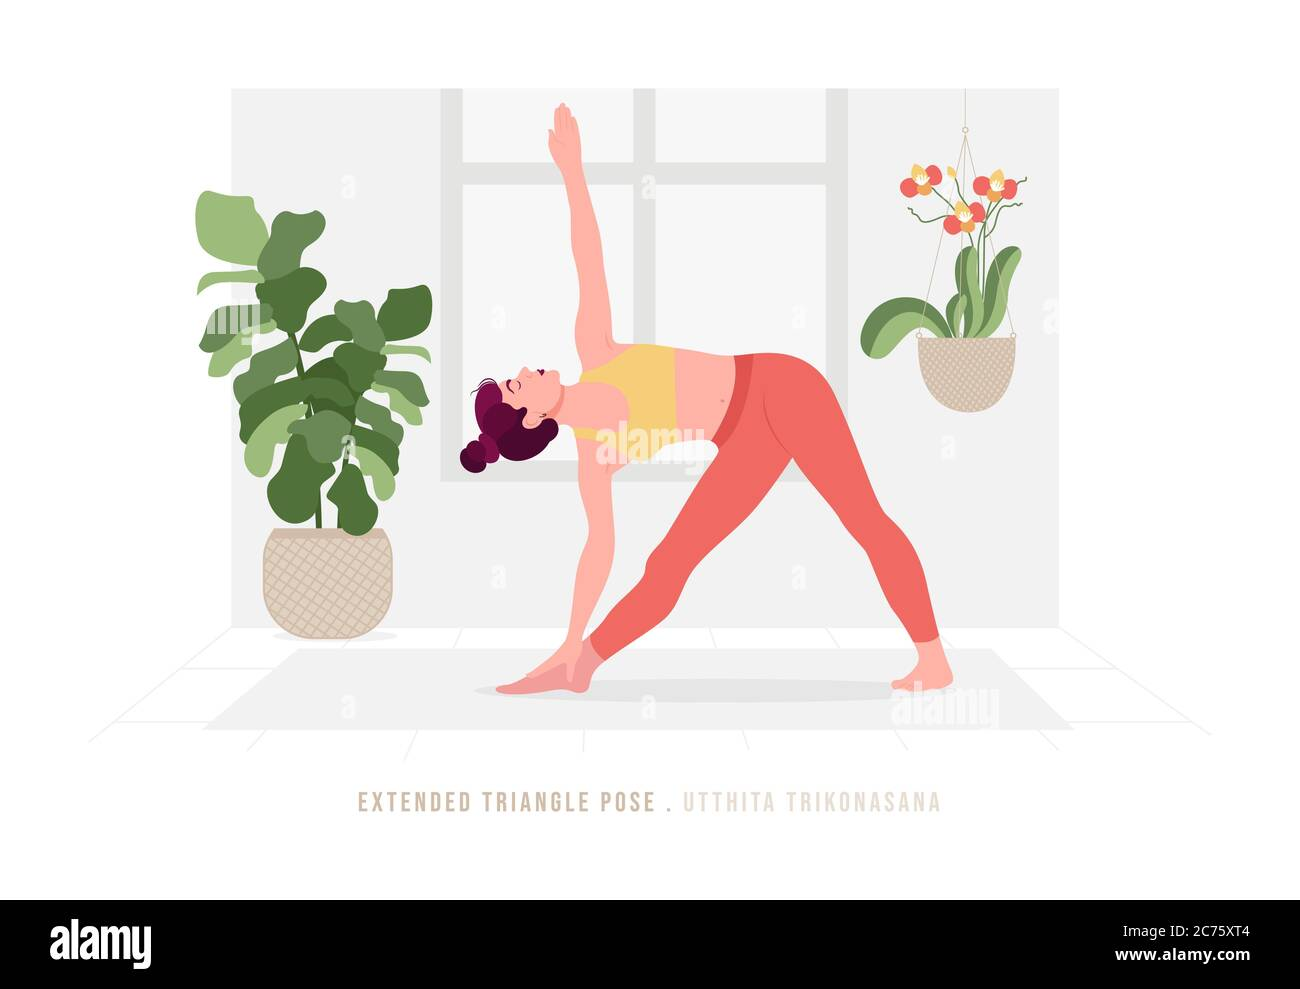 Creative Poster Or Banner Design With Illustration Of Woman Doing Yoga For Yoga Day Celebration Stock Vector Image Art Alamy